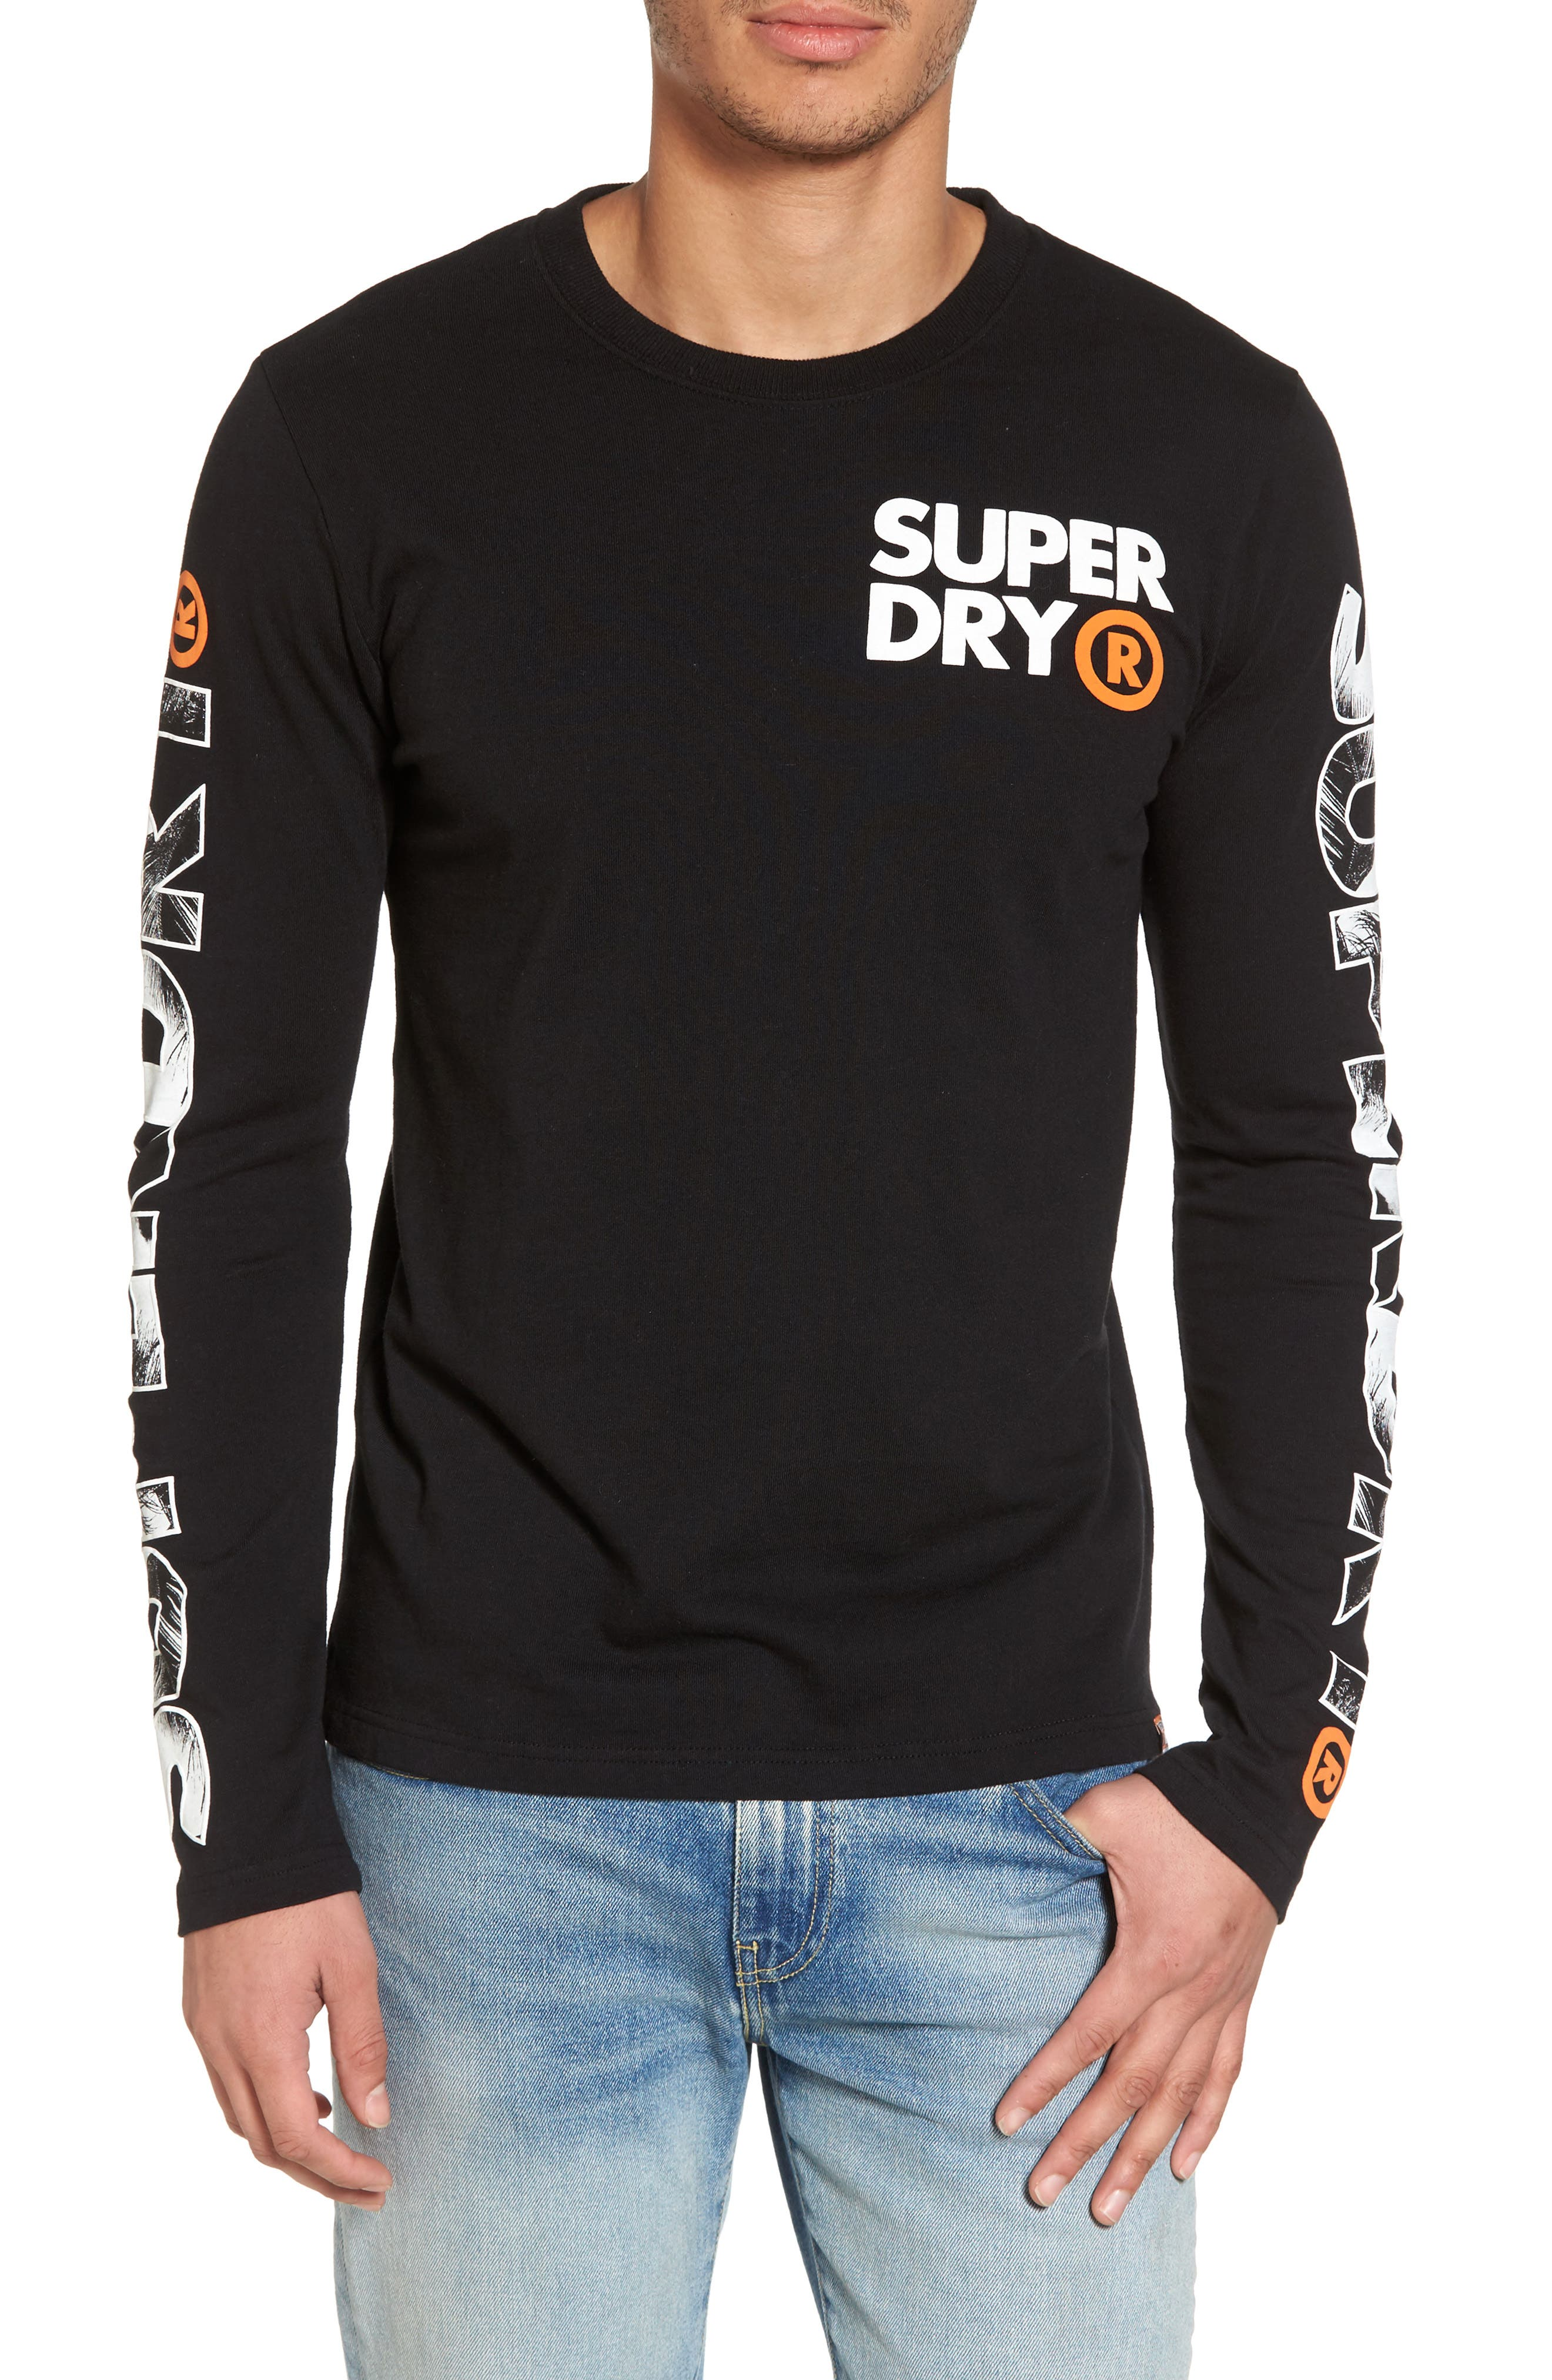 Main Image - Superdry Hyper T-Shirt